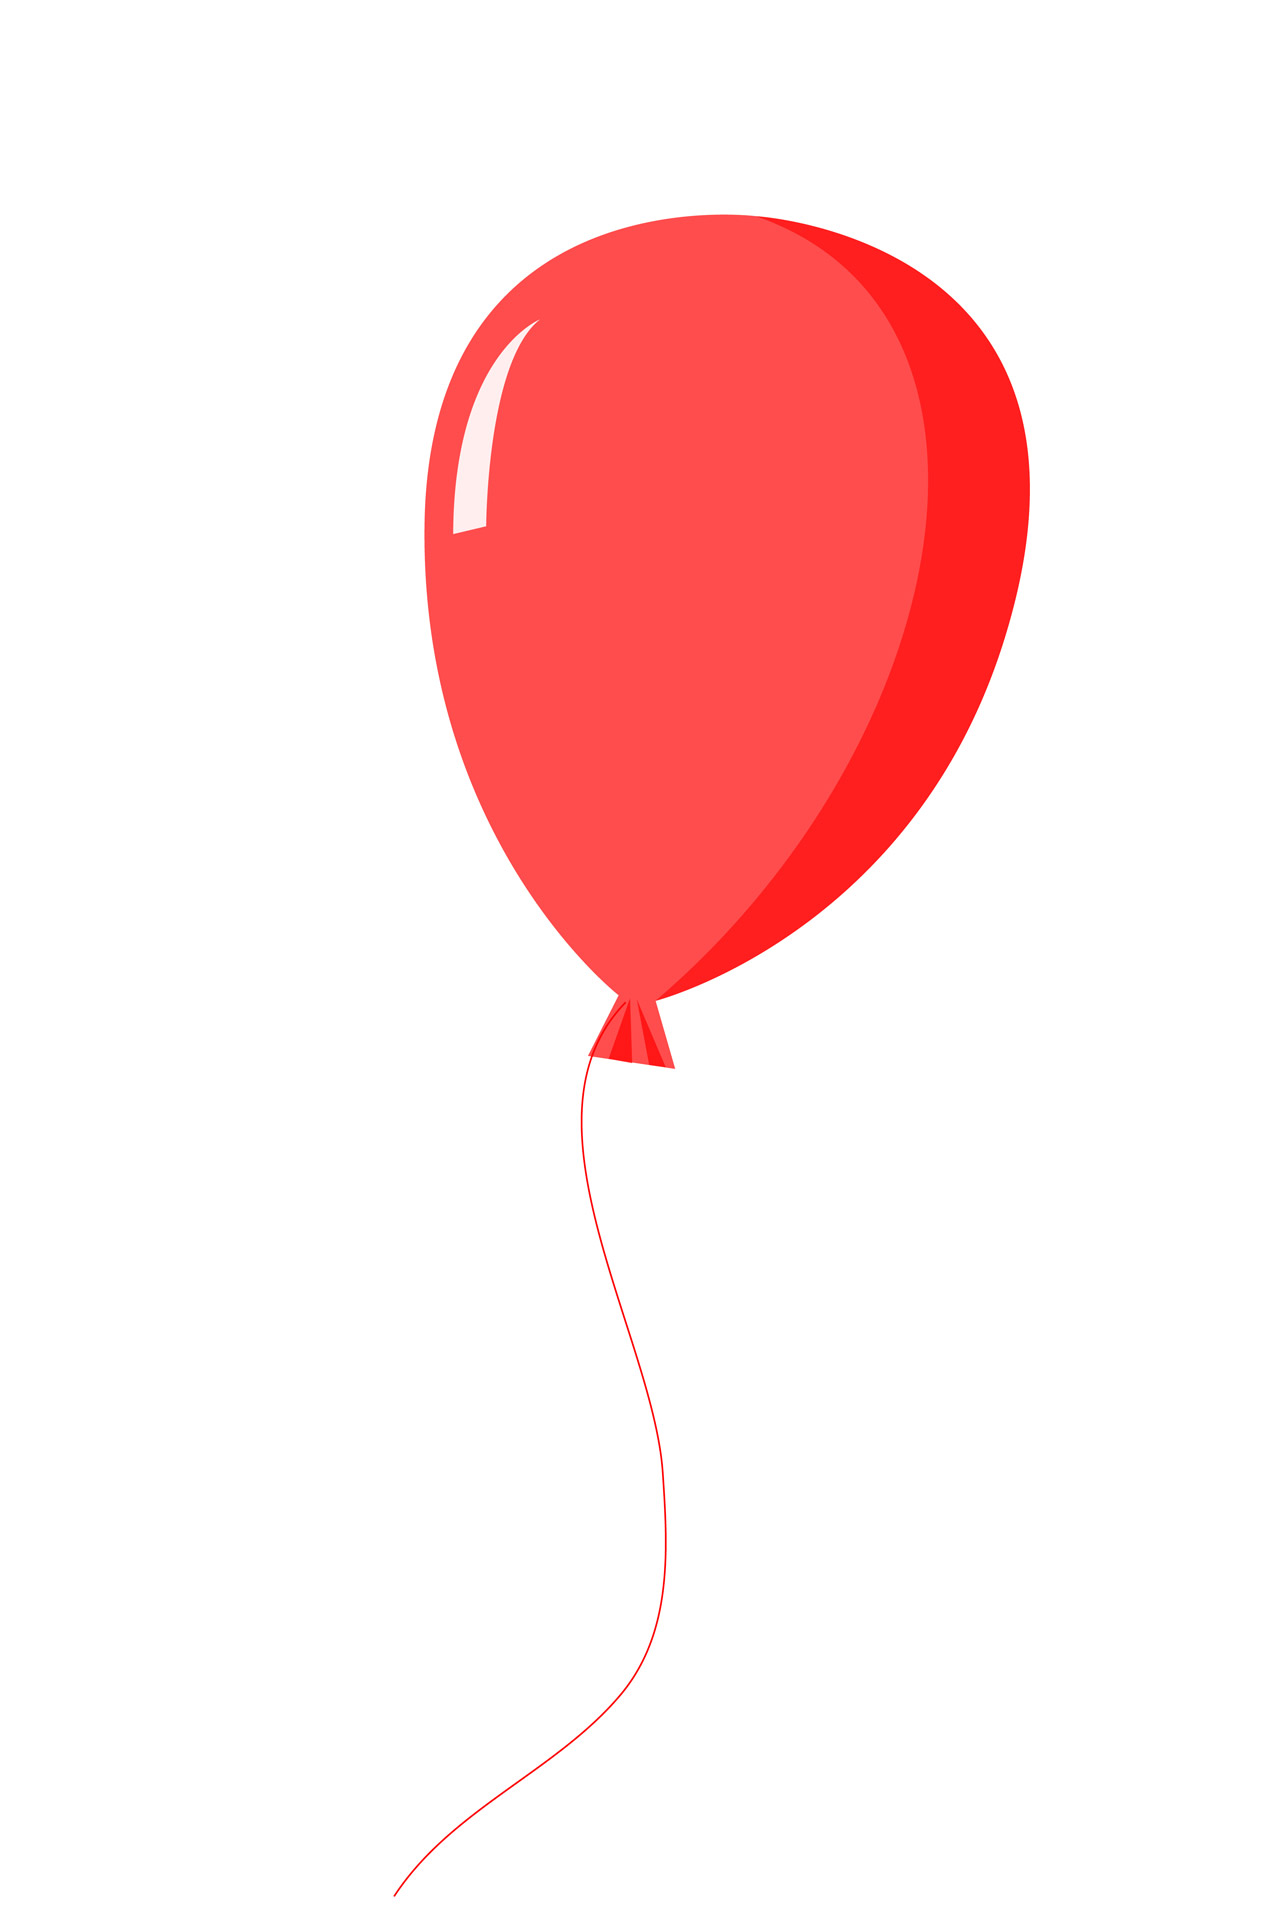 Red Balloon Clipart Free Stock Photo Hd -Red Balloon Clipart Free Stock Photo Hd Public Domain Pictures-14